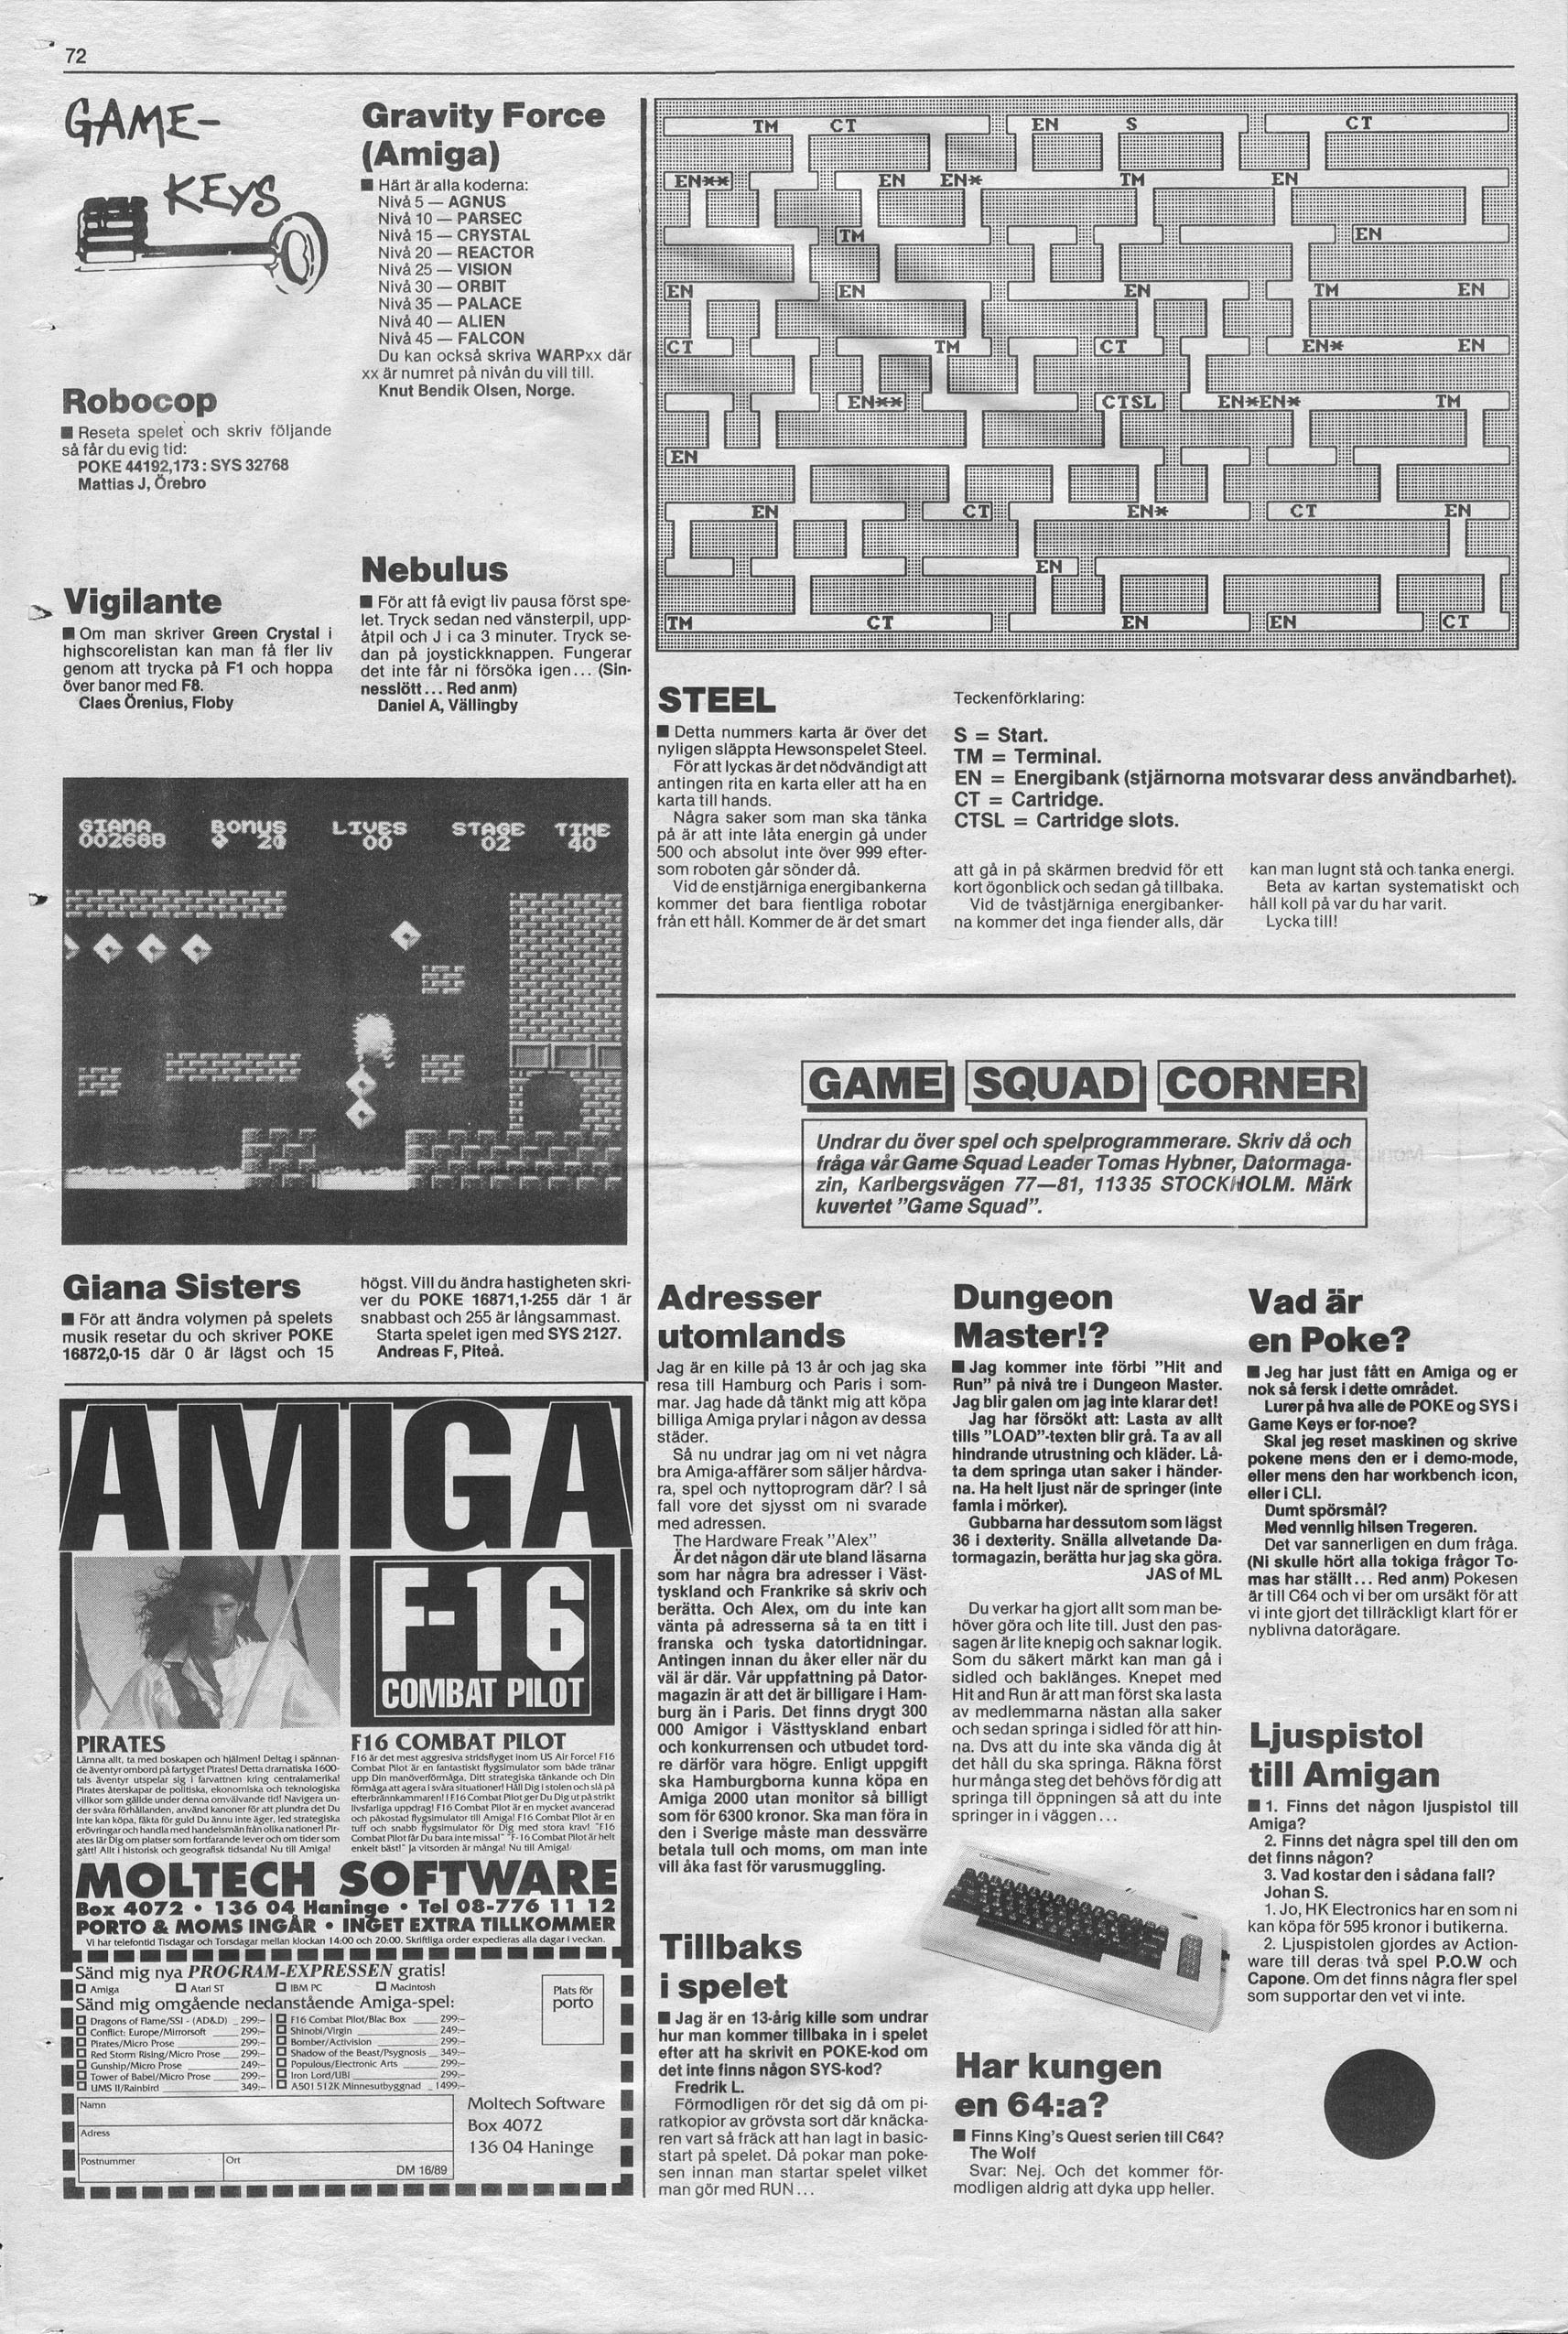 Dungeon Master Hints published in Swedish magazine 'Datormagazin', Vol. 1989 No. 16, November 1989, Page 72